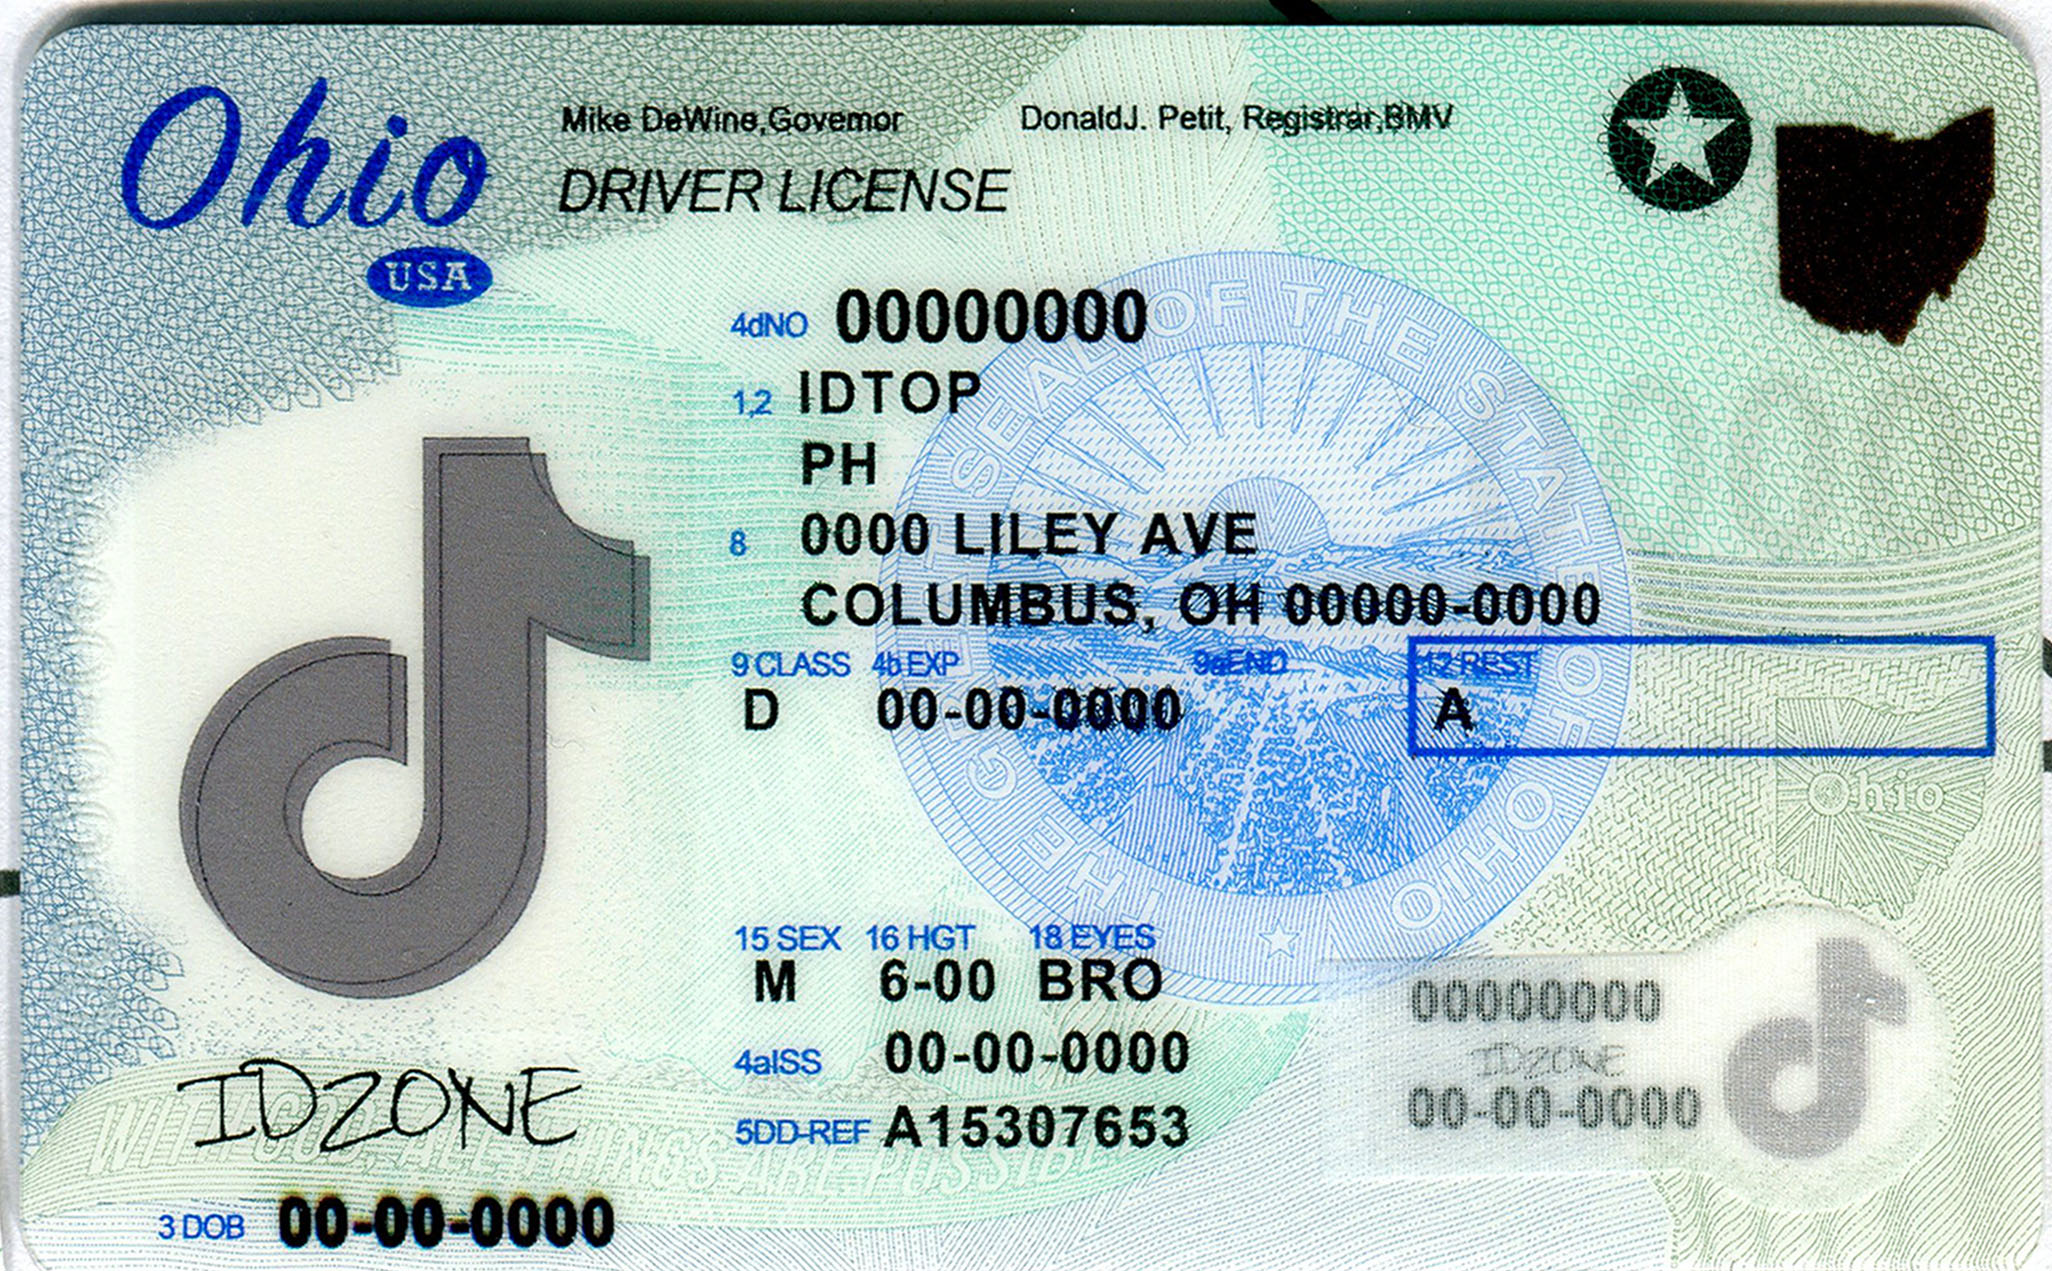 OHIO-New buy fake id